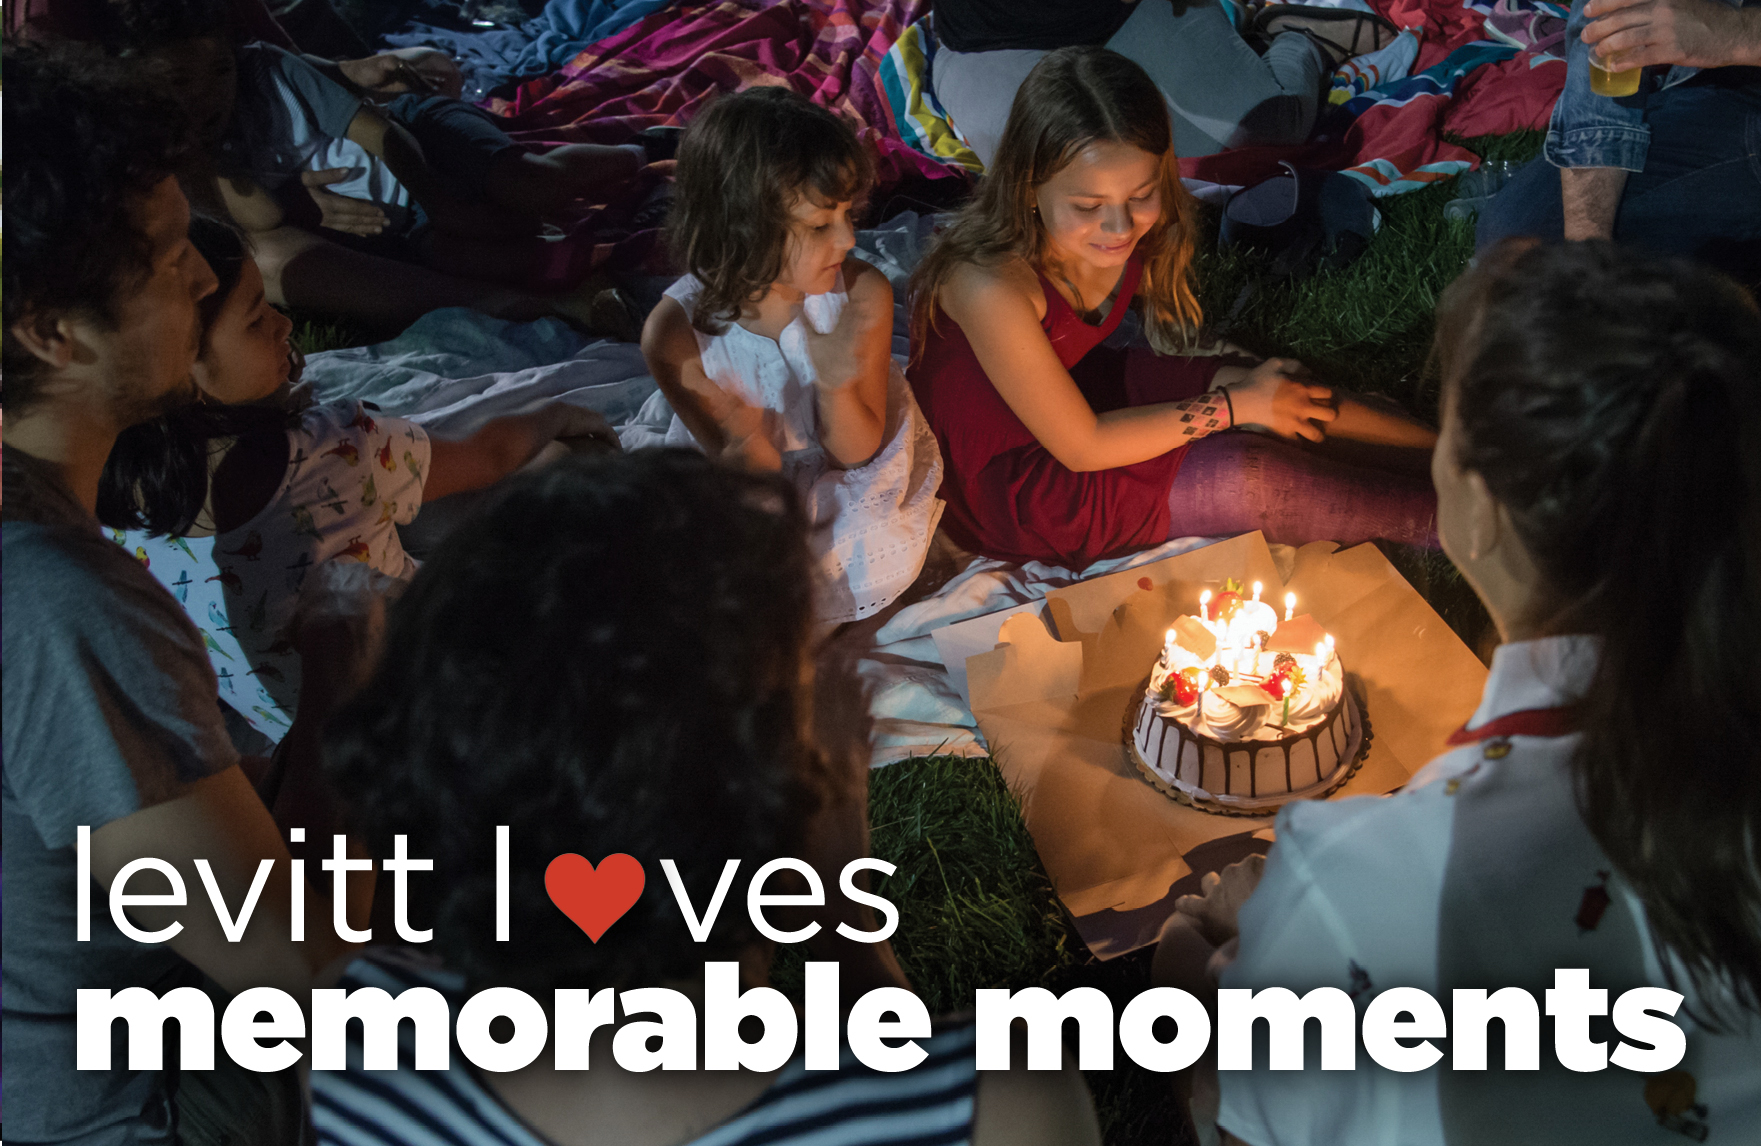 Levitt_loves_memorable_moments